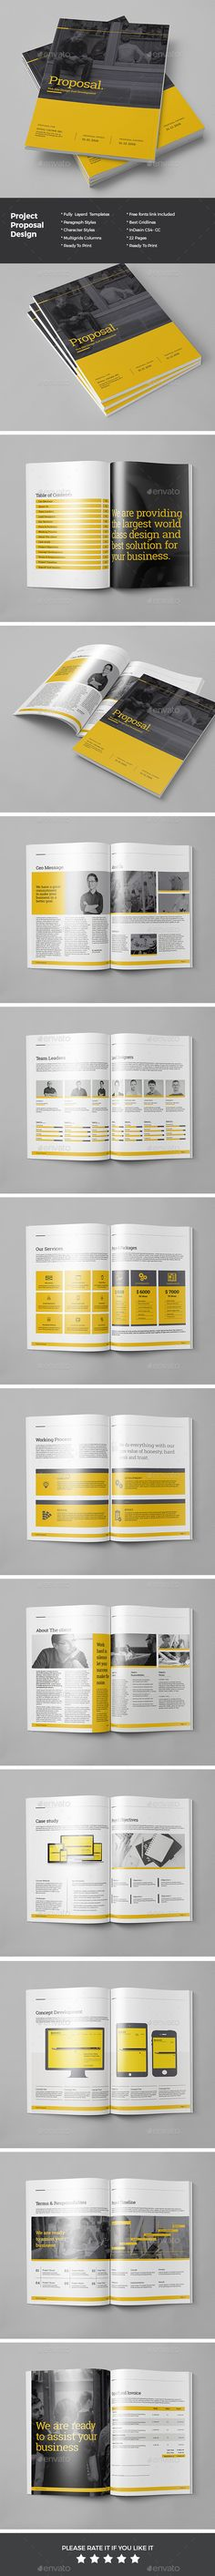 Proposal Template InDesign INDD #design Download: http://graphicriver.net/item/proposal/14419205?ref=ksioks